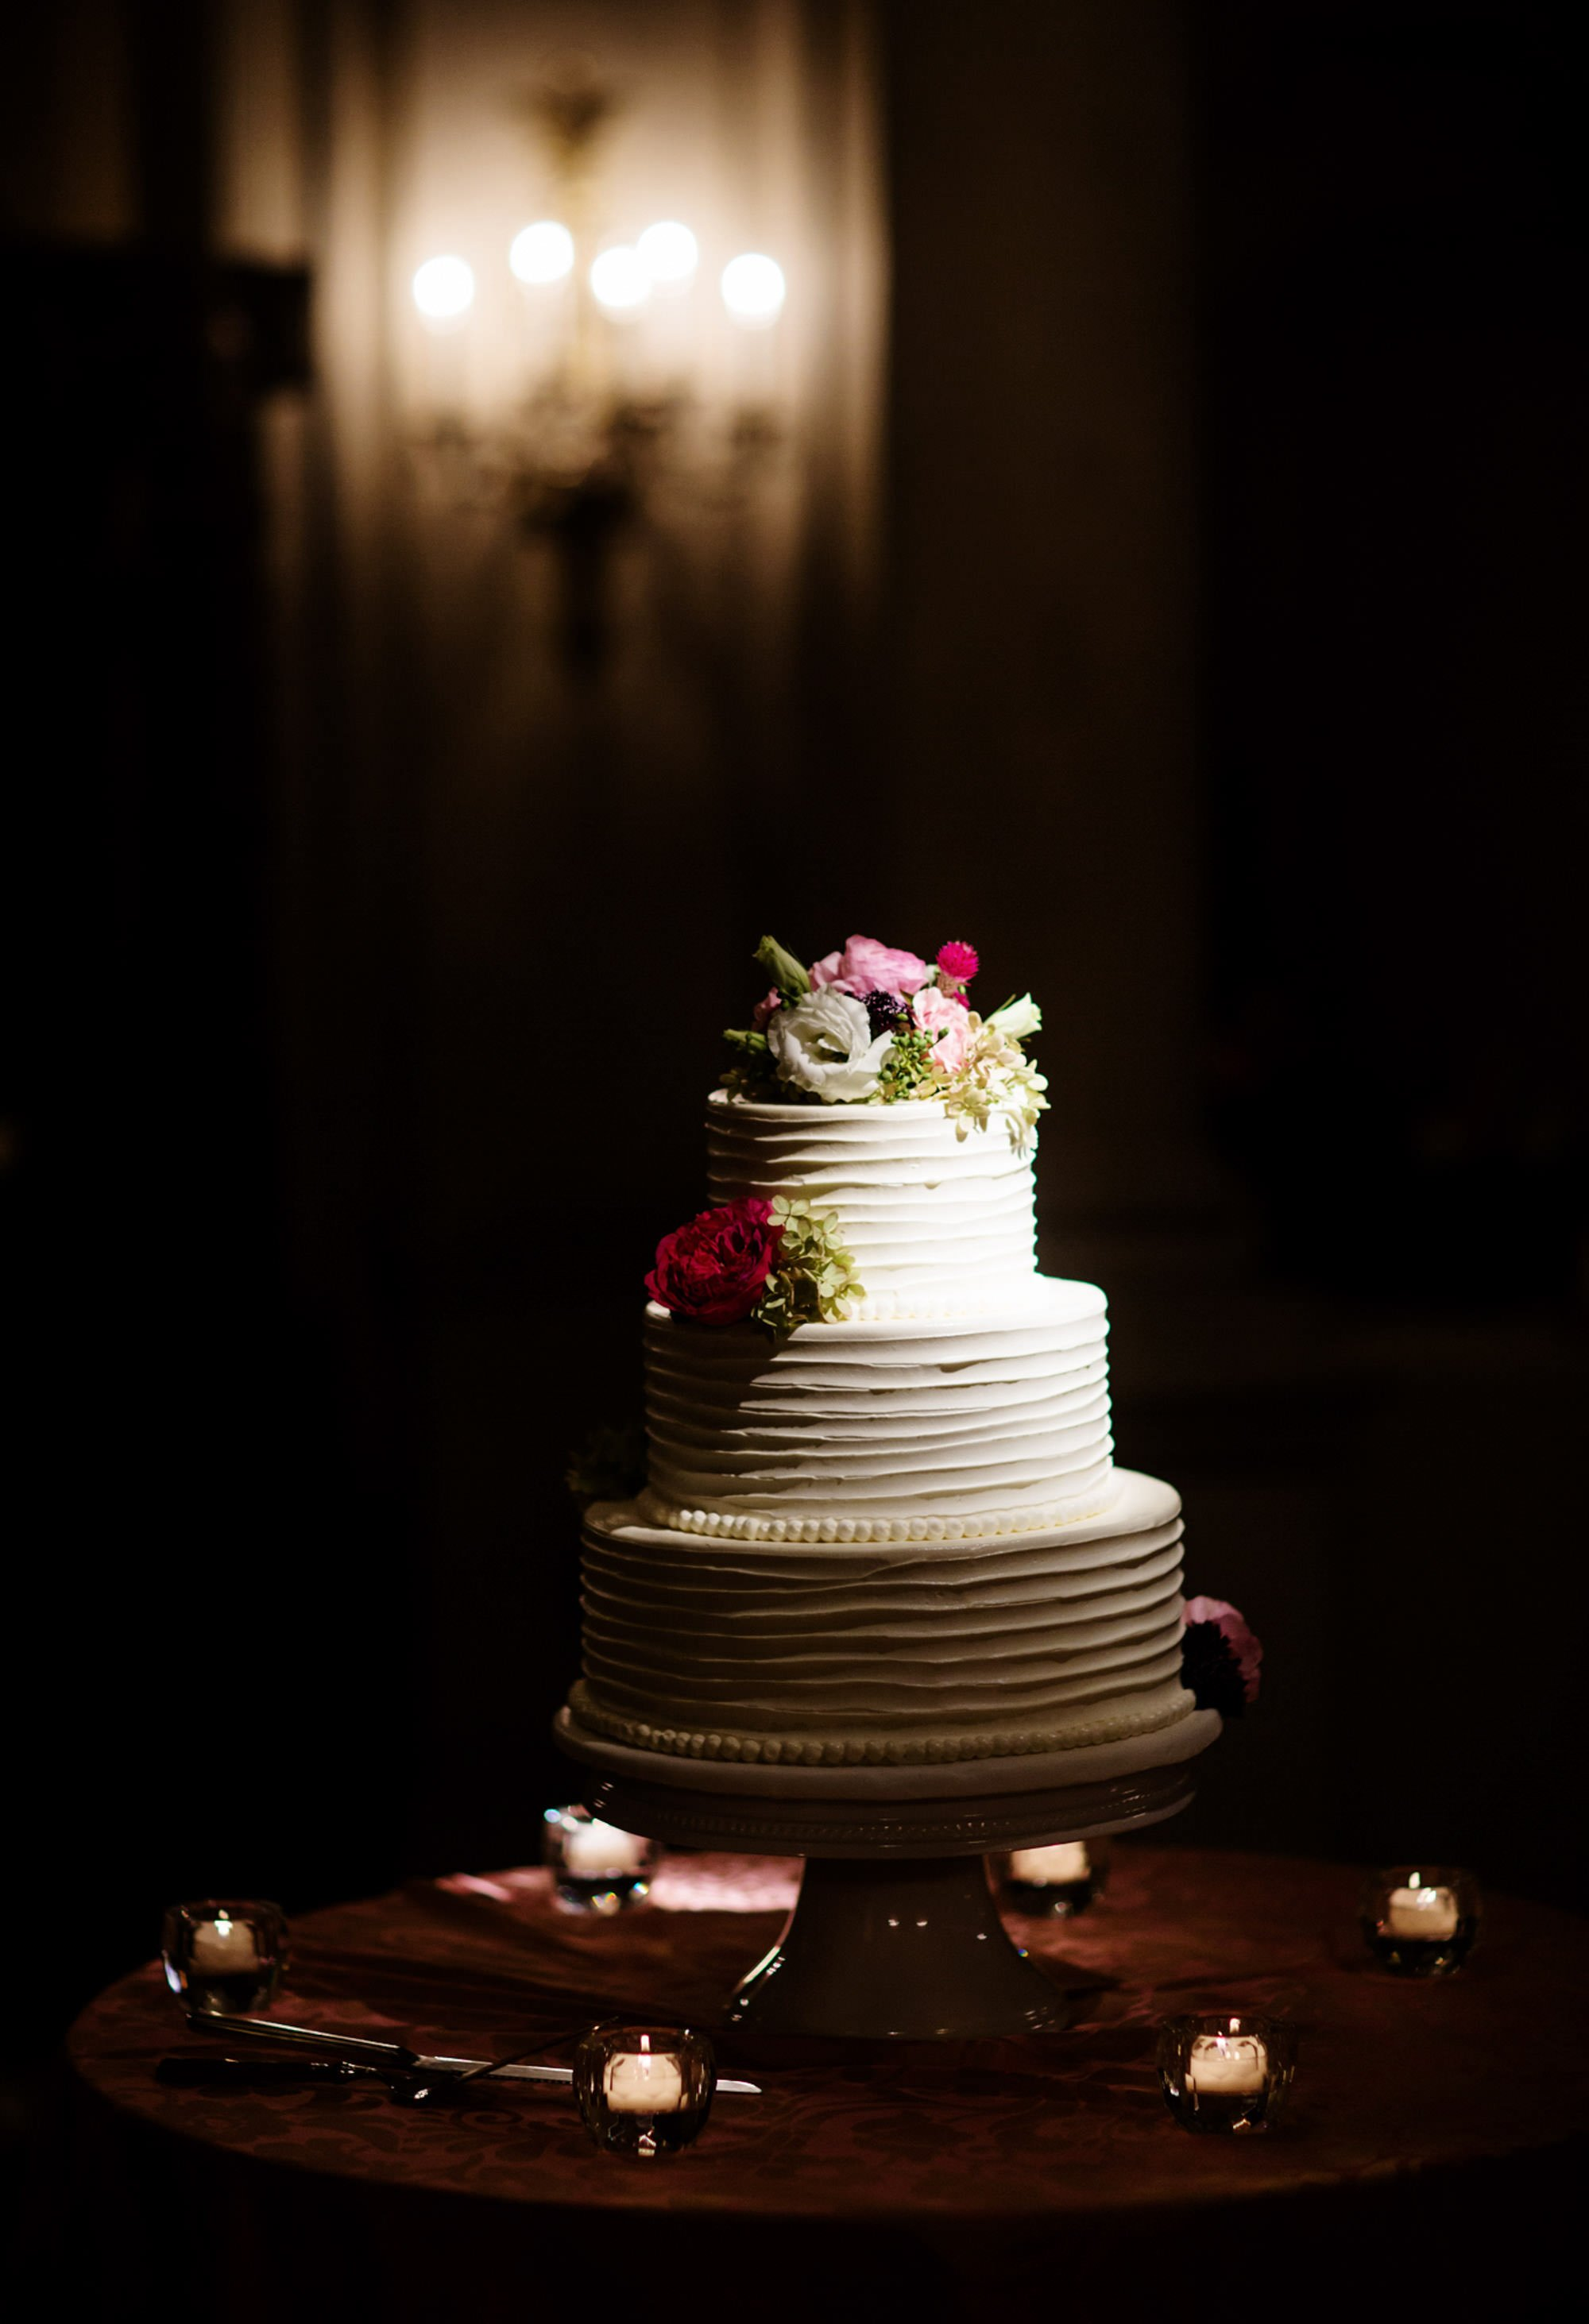 A detail of the wedding cake.